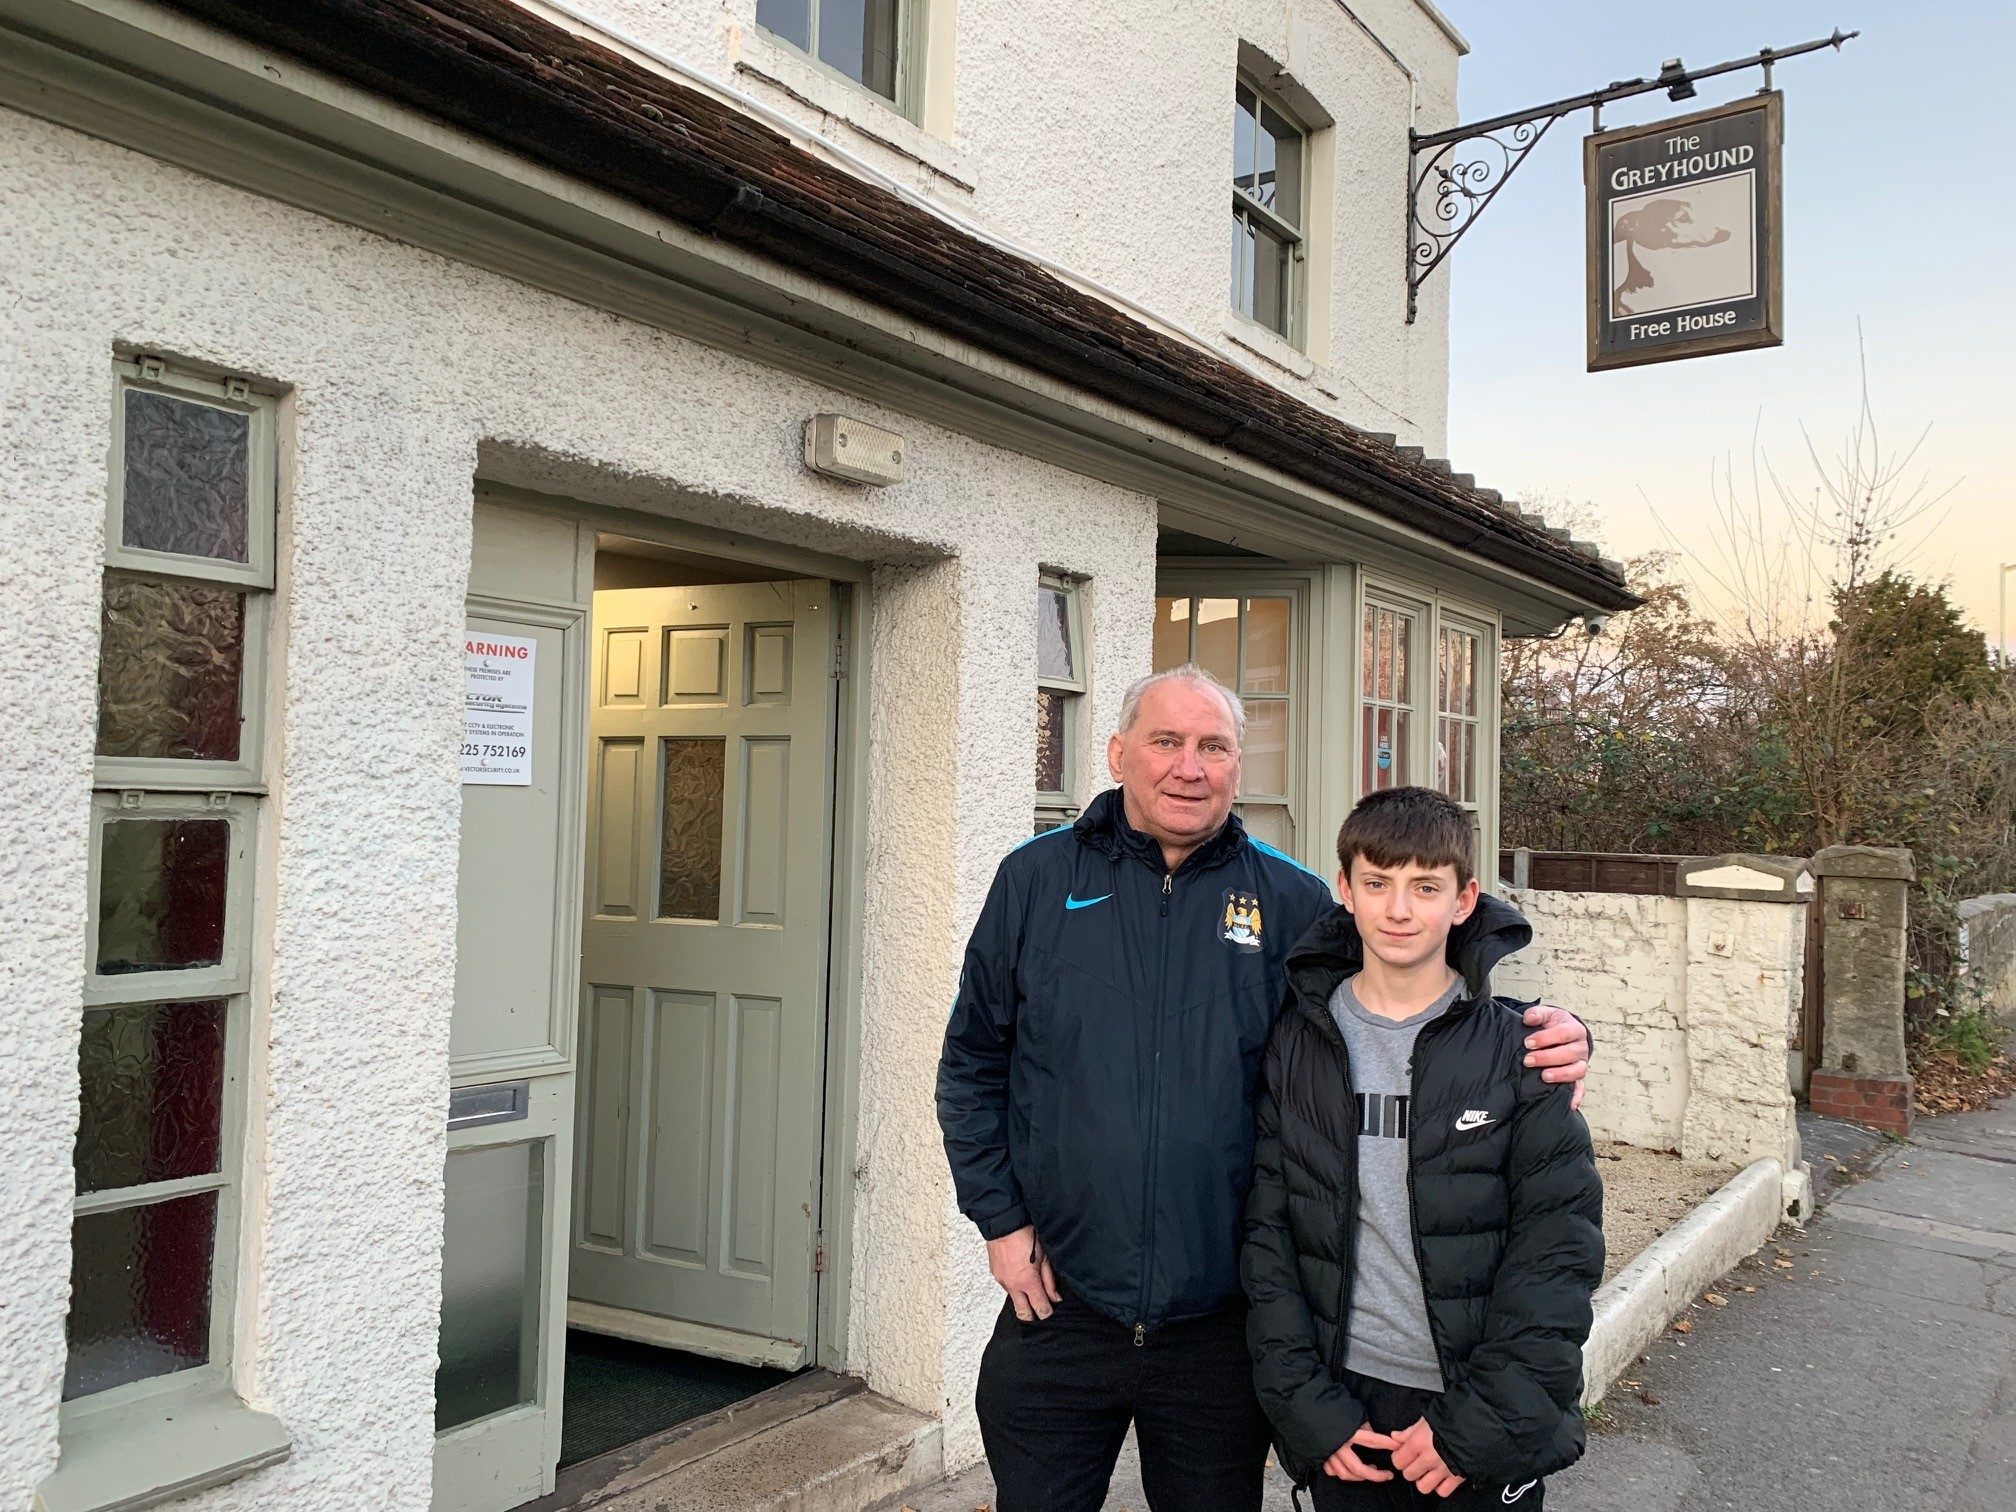 Dramatic roof rescue saves Greyhound landlord and son from burning pub